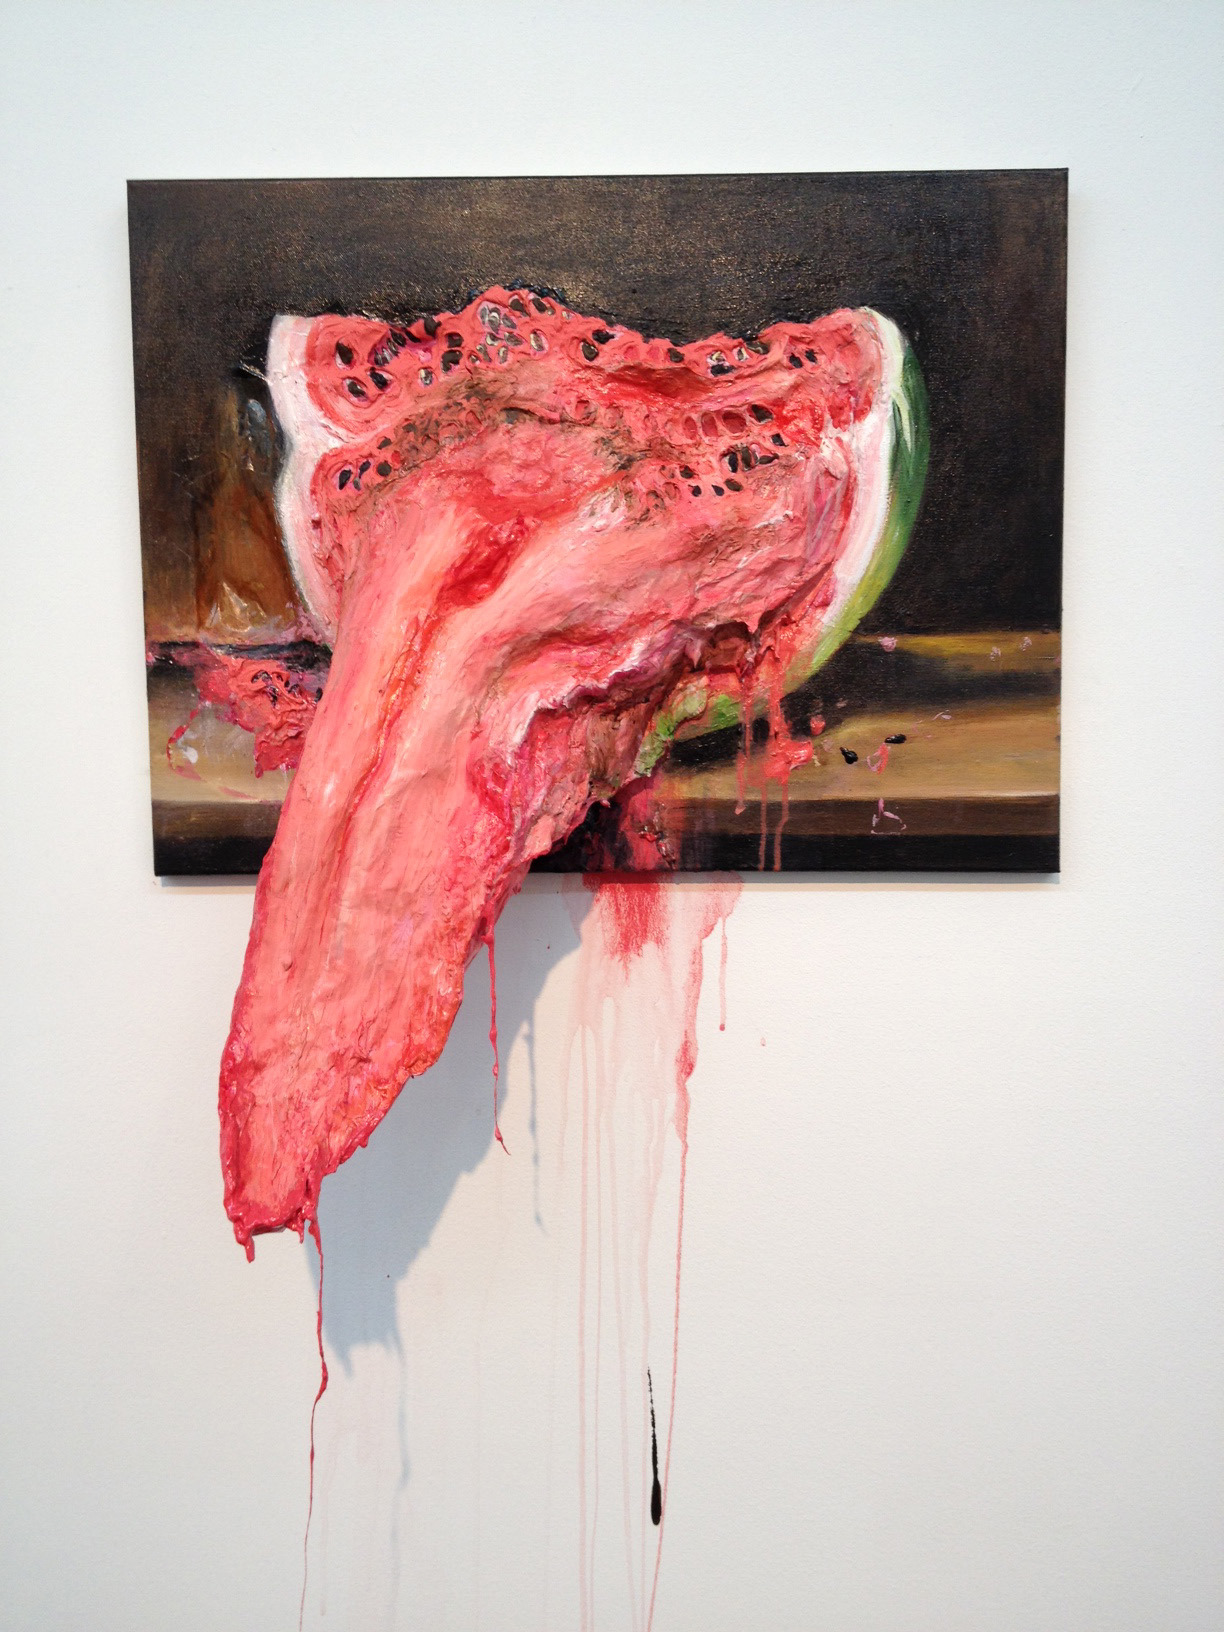 geotropics:  Valerie Hegarty, Watermelon Tongue